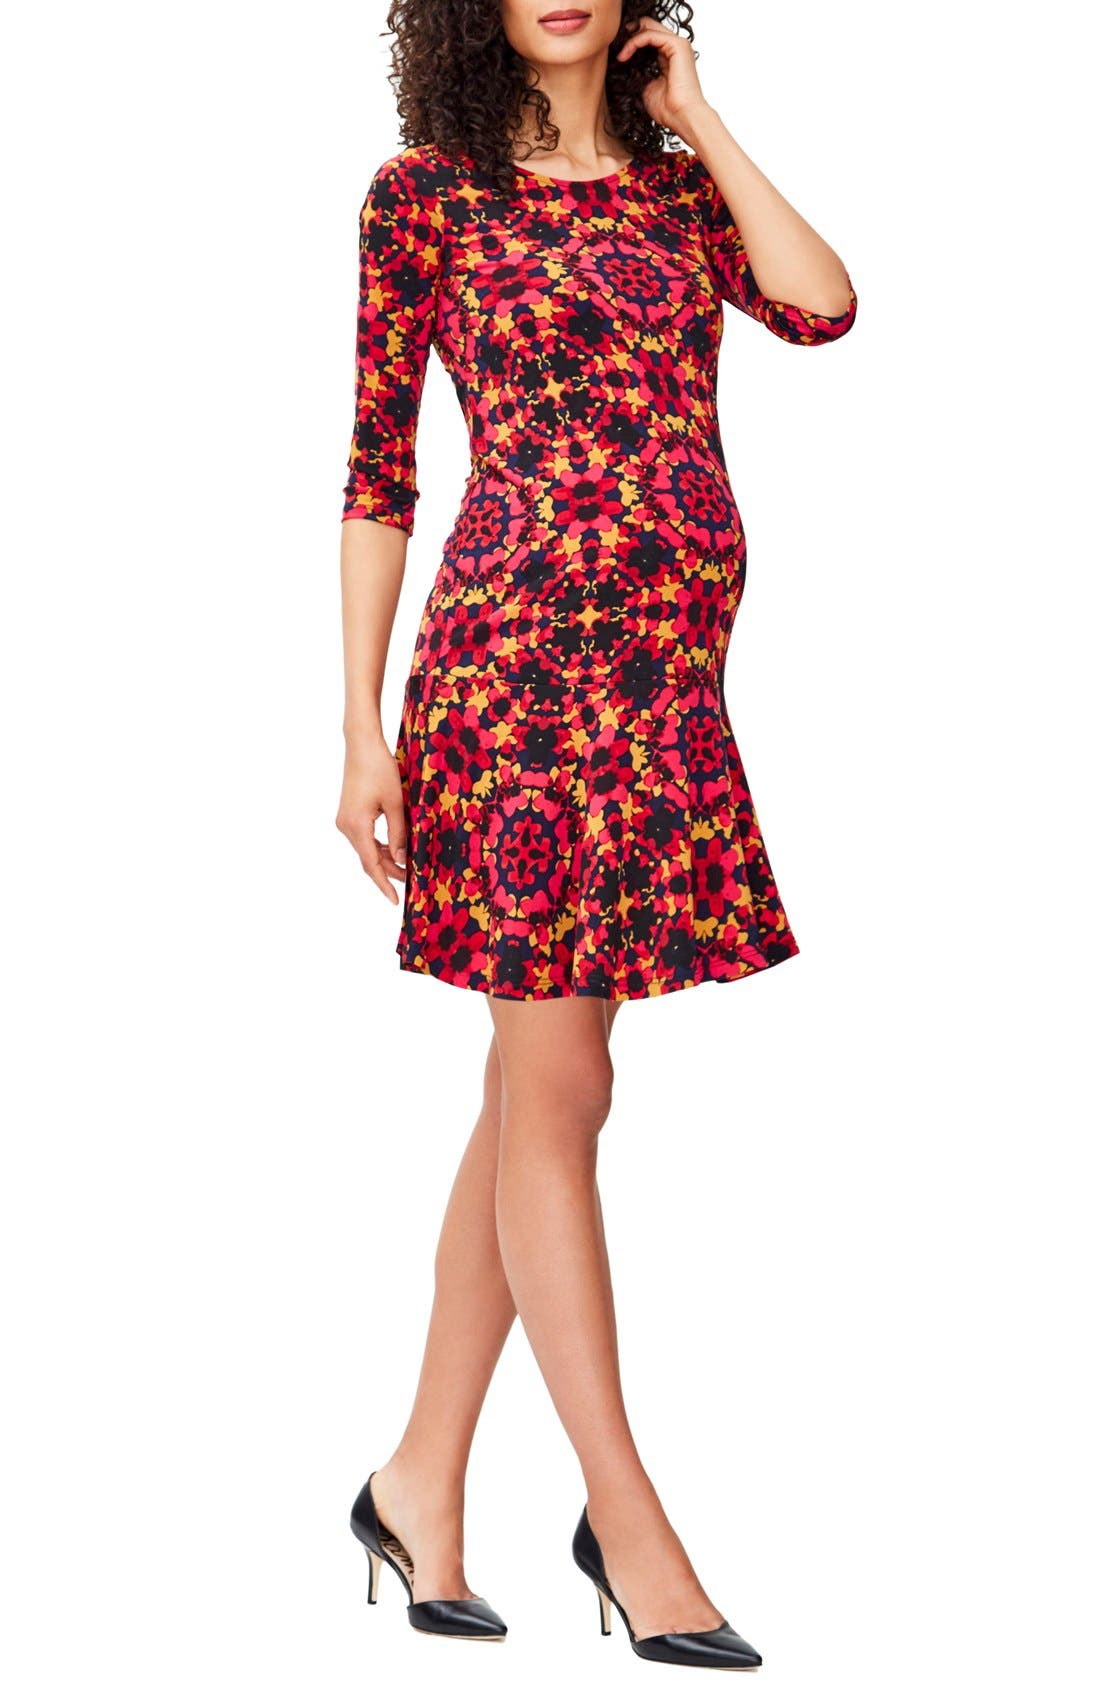 LEOTA 'Kelsey' Print Drop Waist Maternity Dress